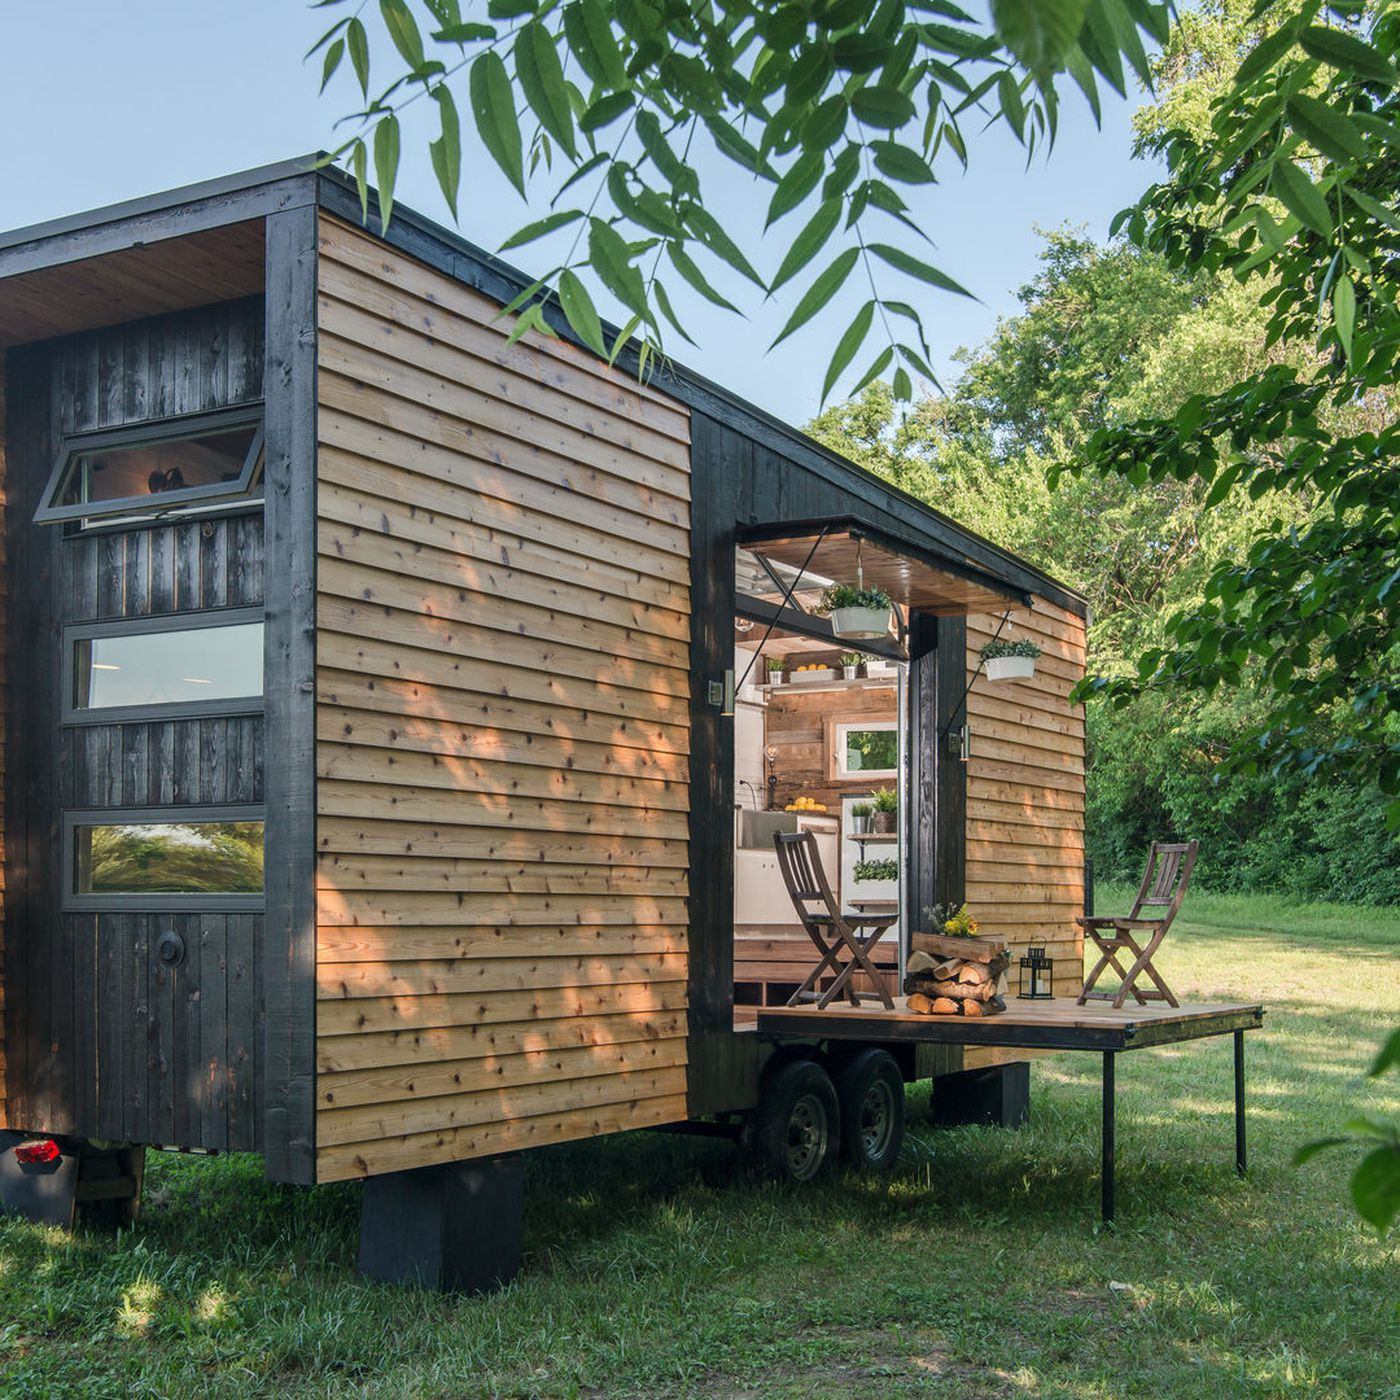 Tricked Out Tiny Home Features Garage Door and Custom Deck - Curbed